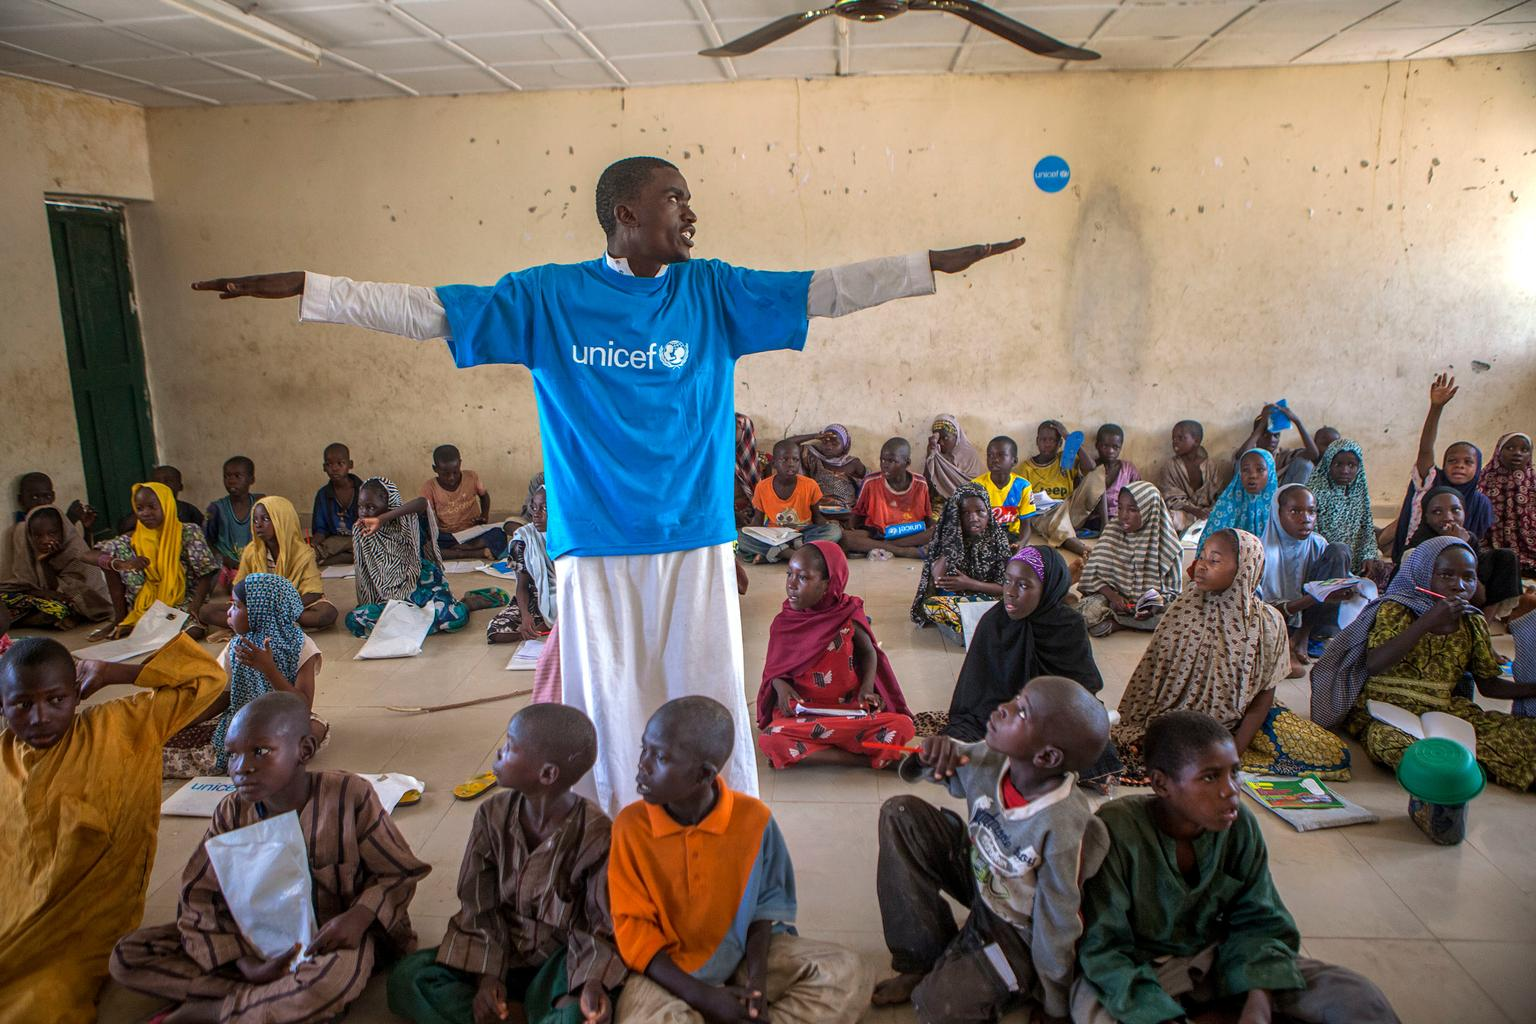 On 26 May, (standing), a teacher with his arms outstretched leads children in an activity at an informal learning centre in a UNICEF-supported safe space in the Dalori camp for internally displaced people, in the north-eastern city of Maiduguri in Borno State. He is wearing a T-shirt with the UNICEF logo, which is also on other items in the space.At end May 2015 in Nigeria, 15.5 million people, including 7.3 million children, are affected by the continuing crisis in the country's north-eastern region. More than 1.3 million Nigerians in the three states affected – Adamawa, Yobe and Borno – have fled their homes as a result of violence and attacks by Boko Haram insurgents that have escalated since the beginning of 2015. Many of the displaced, most of whom are children and women, are sheltering in host communities that have limited resources, and in formal and informal camps. All are in urgent need of basic supplies, health and nutrition services, and critical water, sanitation and hygiene (WASH) support to prevent the spread of disease. An estimated 200,000 people have also fled to neighbouring Cameroon, Chad and the Niger, further straining already vulnerable communities. The impact of the crisis on children and women is of particular concern. Many of them have lost their homes and belongings – escaping with only the clothing they were wearing; and some have walked for days – or even weeks – to find refuge. Many children in the region have been traumatized and are in need of psychosocial support. They have witnessed violence and atrocities, including seeing parents and siblings slaughtered by Boko Haram insurgents; and have been exposed to or have experienced violence and brutality. Their homes have been burned and their schools have been damaged or destroyed during the attacks. The insurgency has also created a larger humanitarian crisis in the region. UNICEF is working with the Government and other partners, including other United Nations organizati